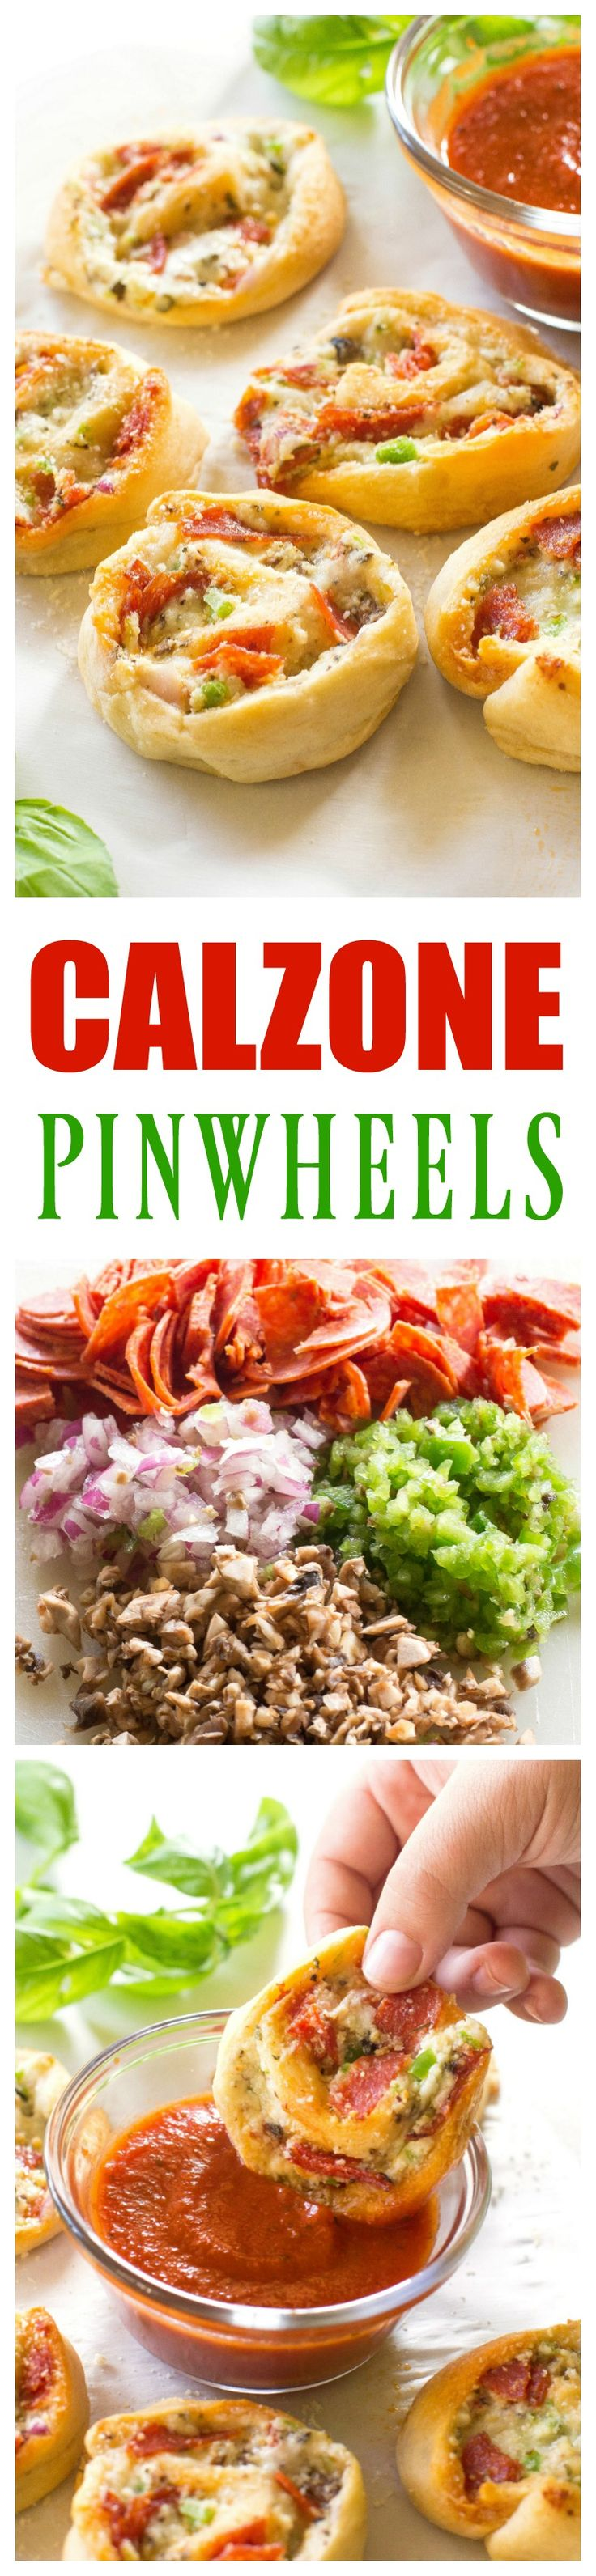 Calzone Pinwheels - pepperoni, mushrooms, onion, and green bell pepper. Guess we should call these Supreme Calzone Pinwheels! the-girl-who-ate-...